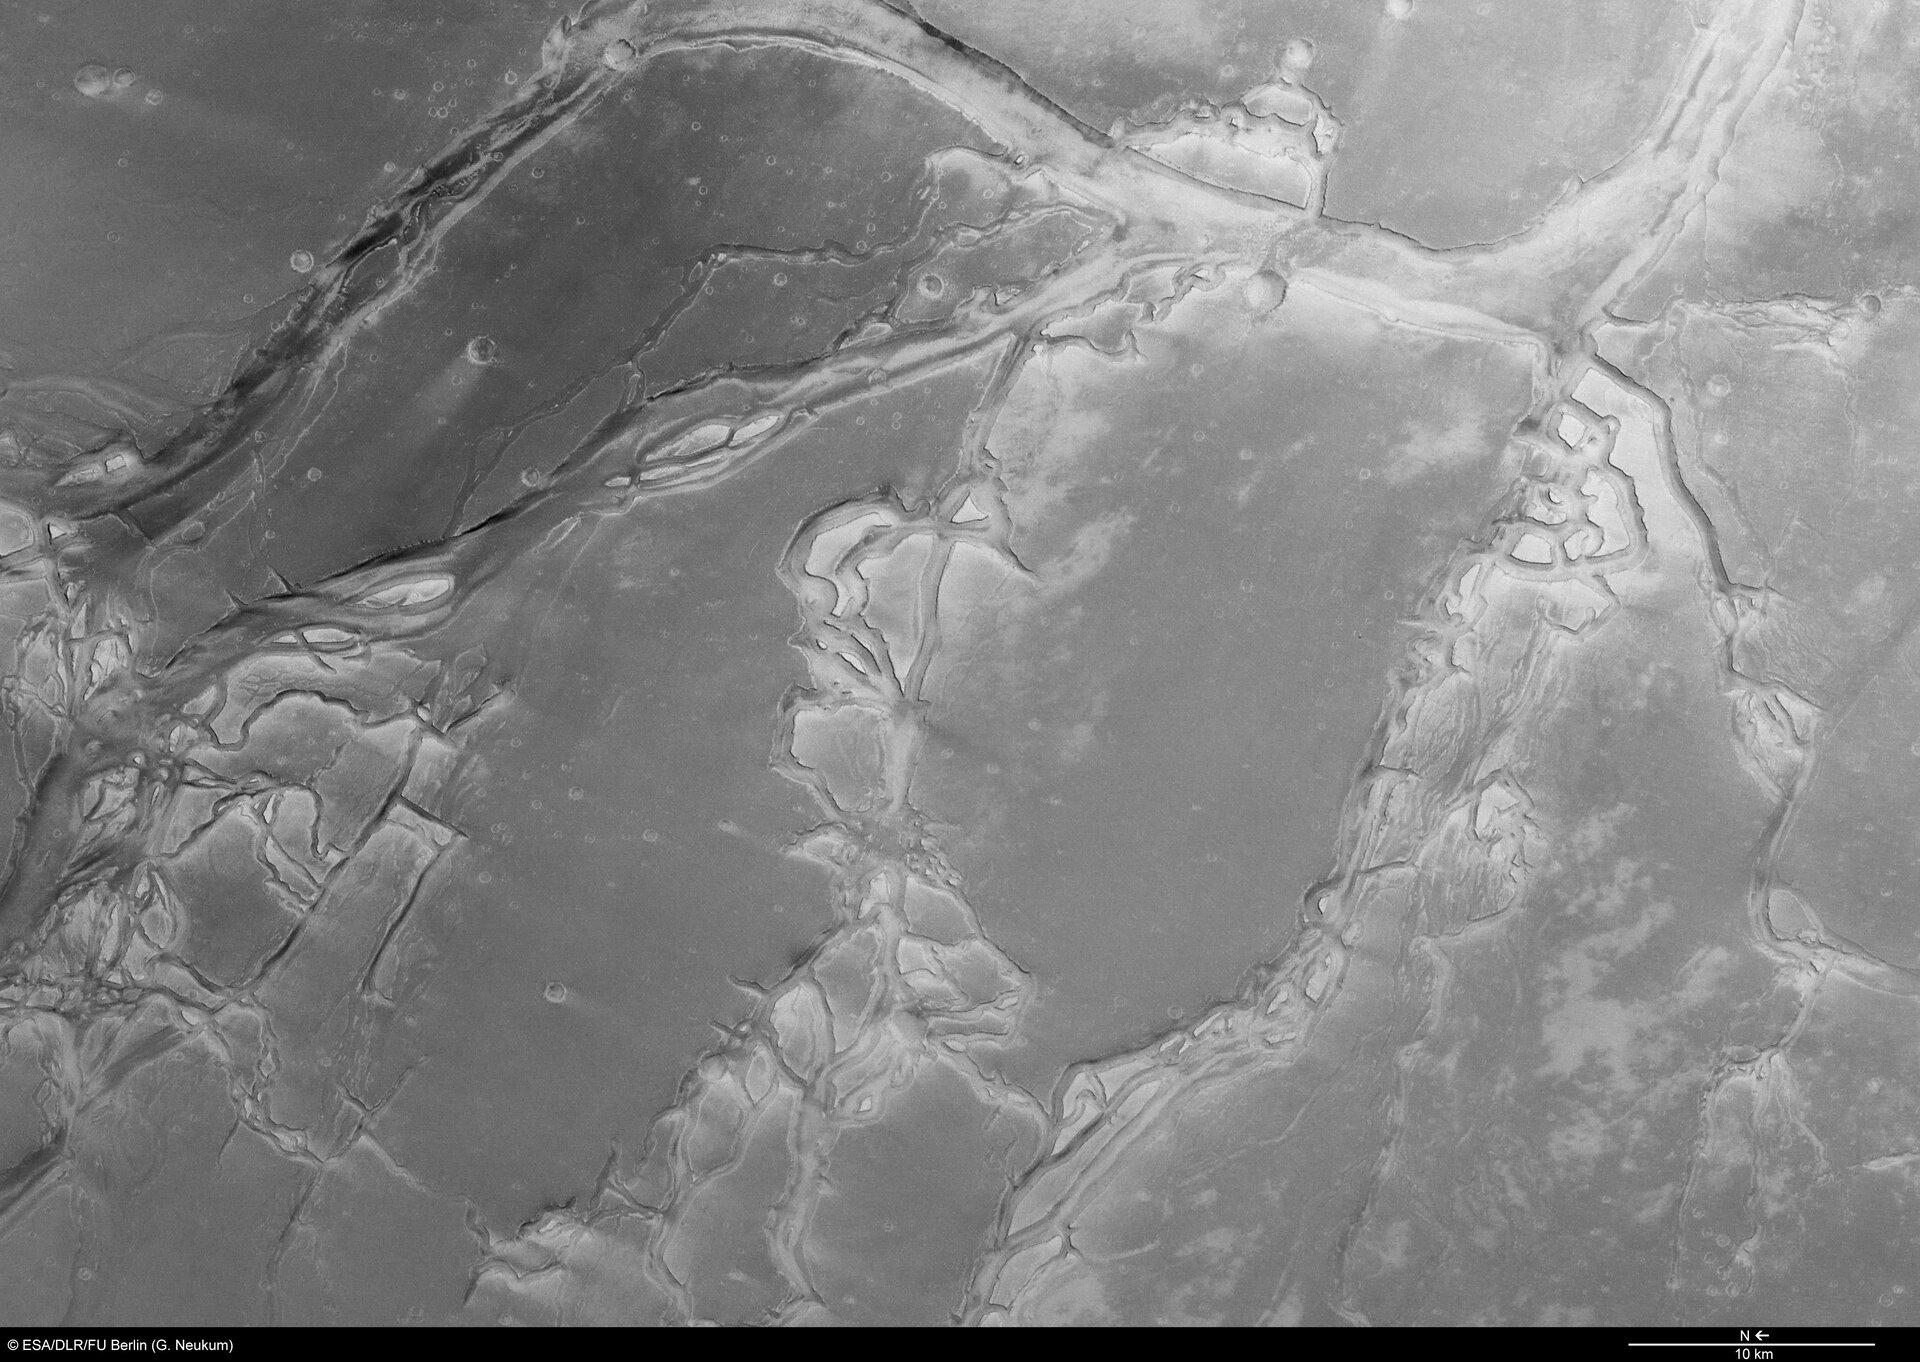 Granicus Valles and Tinjar Valles, black and white (North to the left)